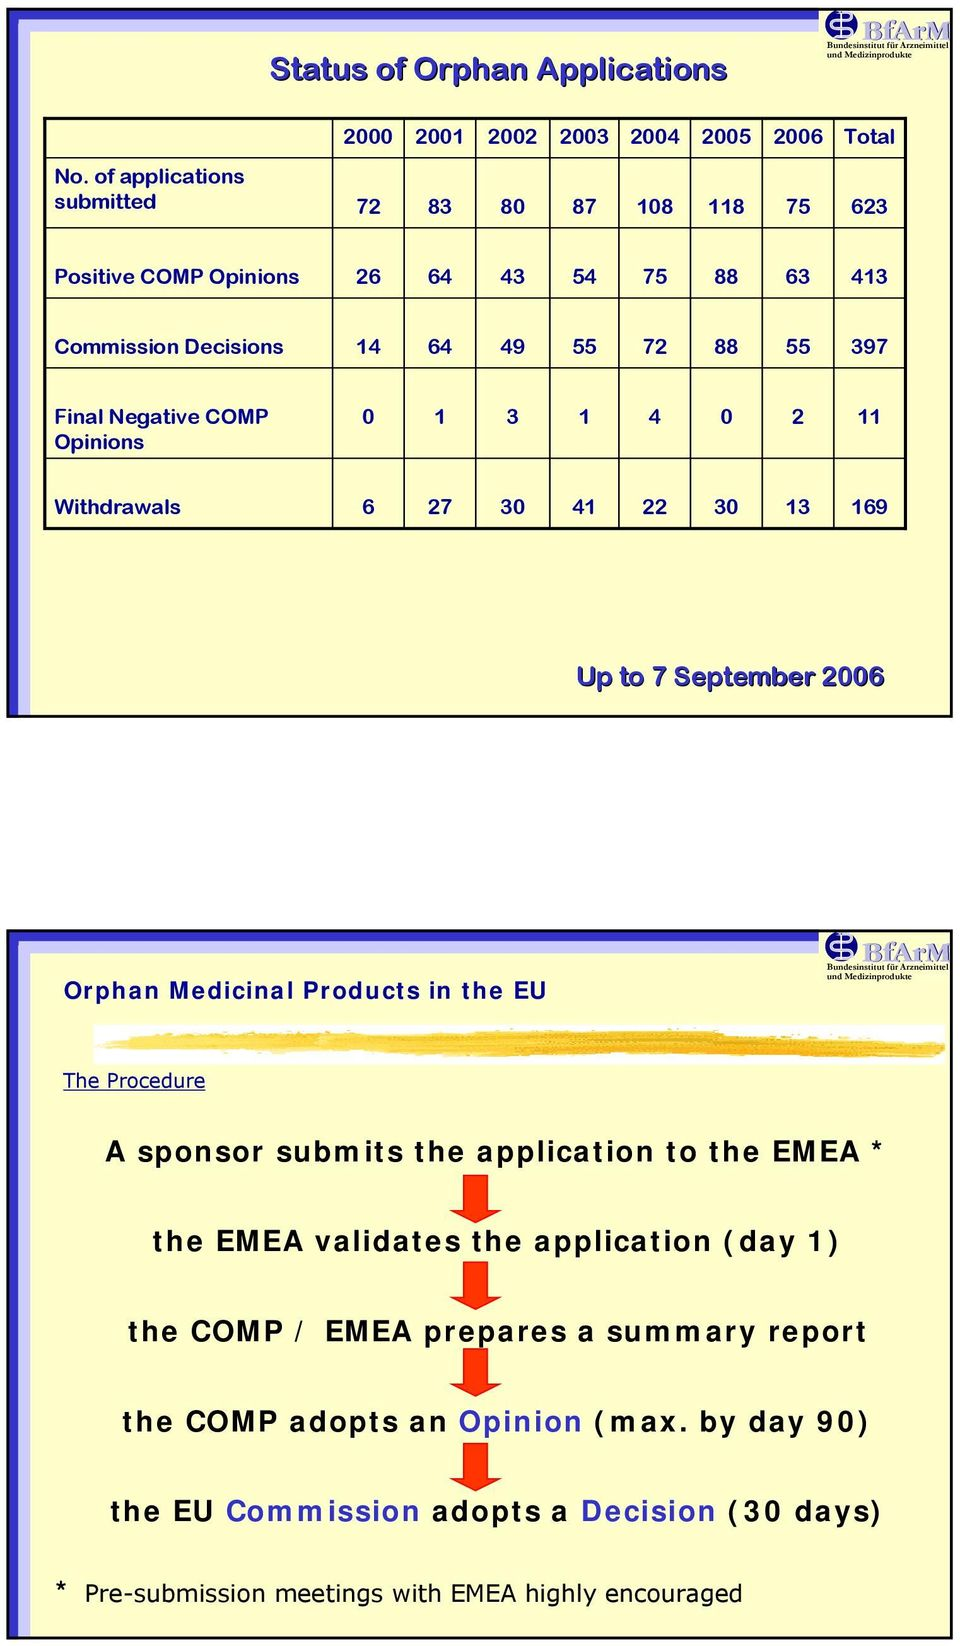 COMP Opinions 0 1 3 1 4 0 2 11 Withdrawals 6 27 30 41 22 30 13 169 Up to 7 September 2006 Orphan Medicinal Products in the EU The Procedure A sponsor submits the